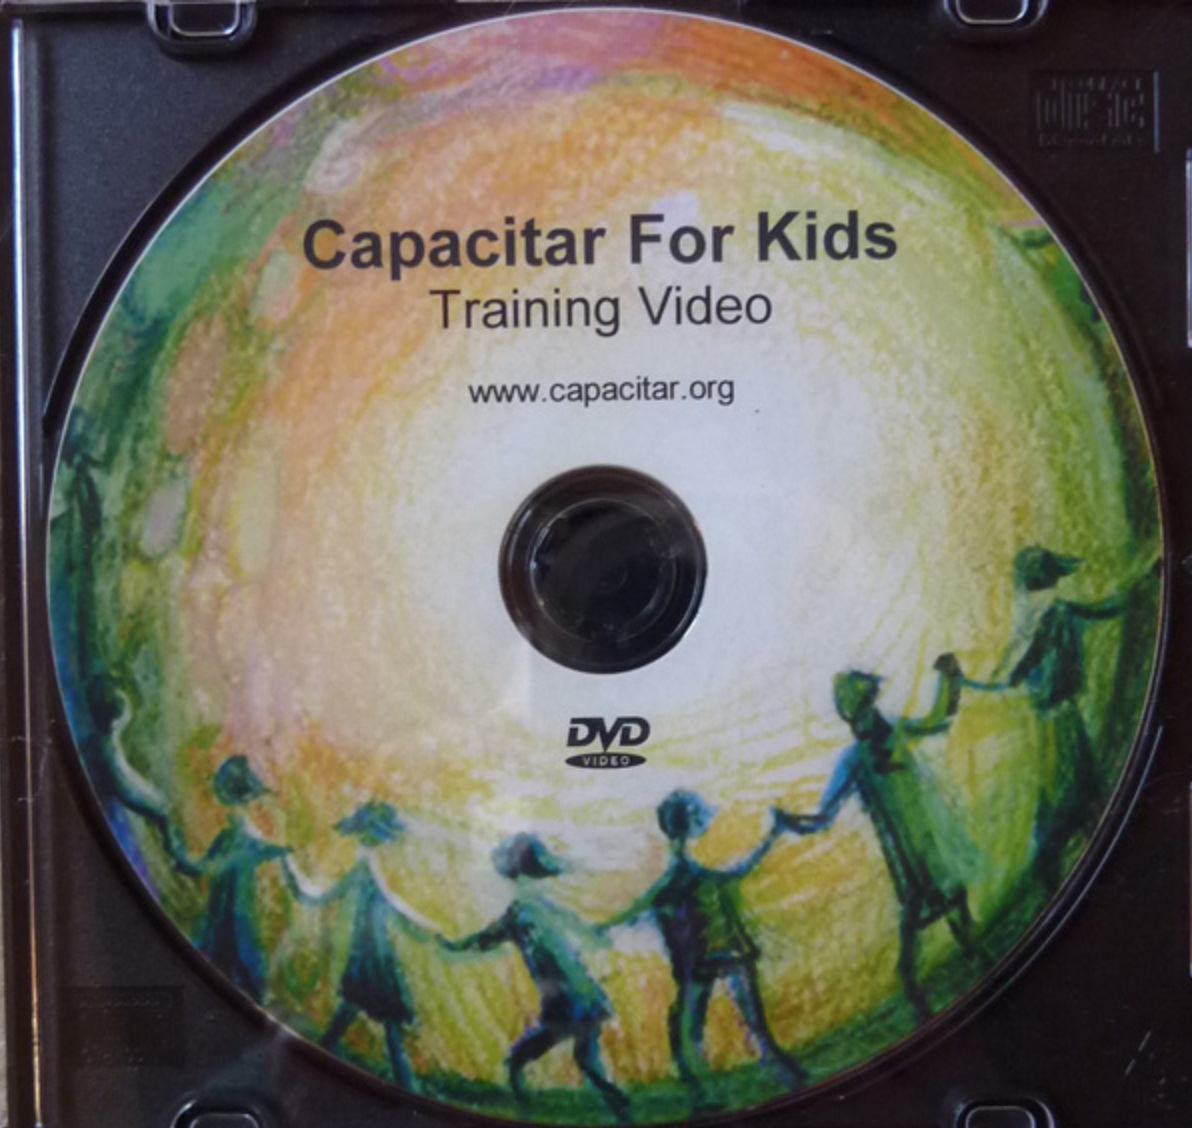 Digital Video: Capacitar for Kids